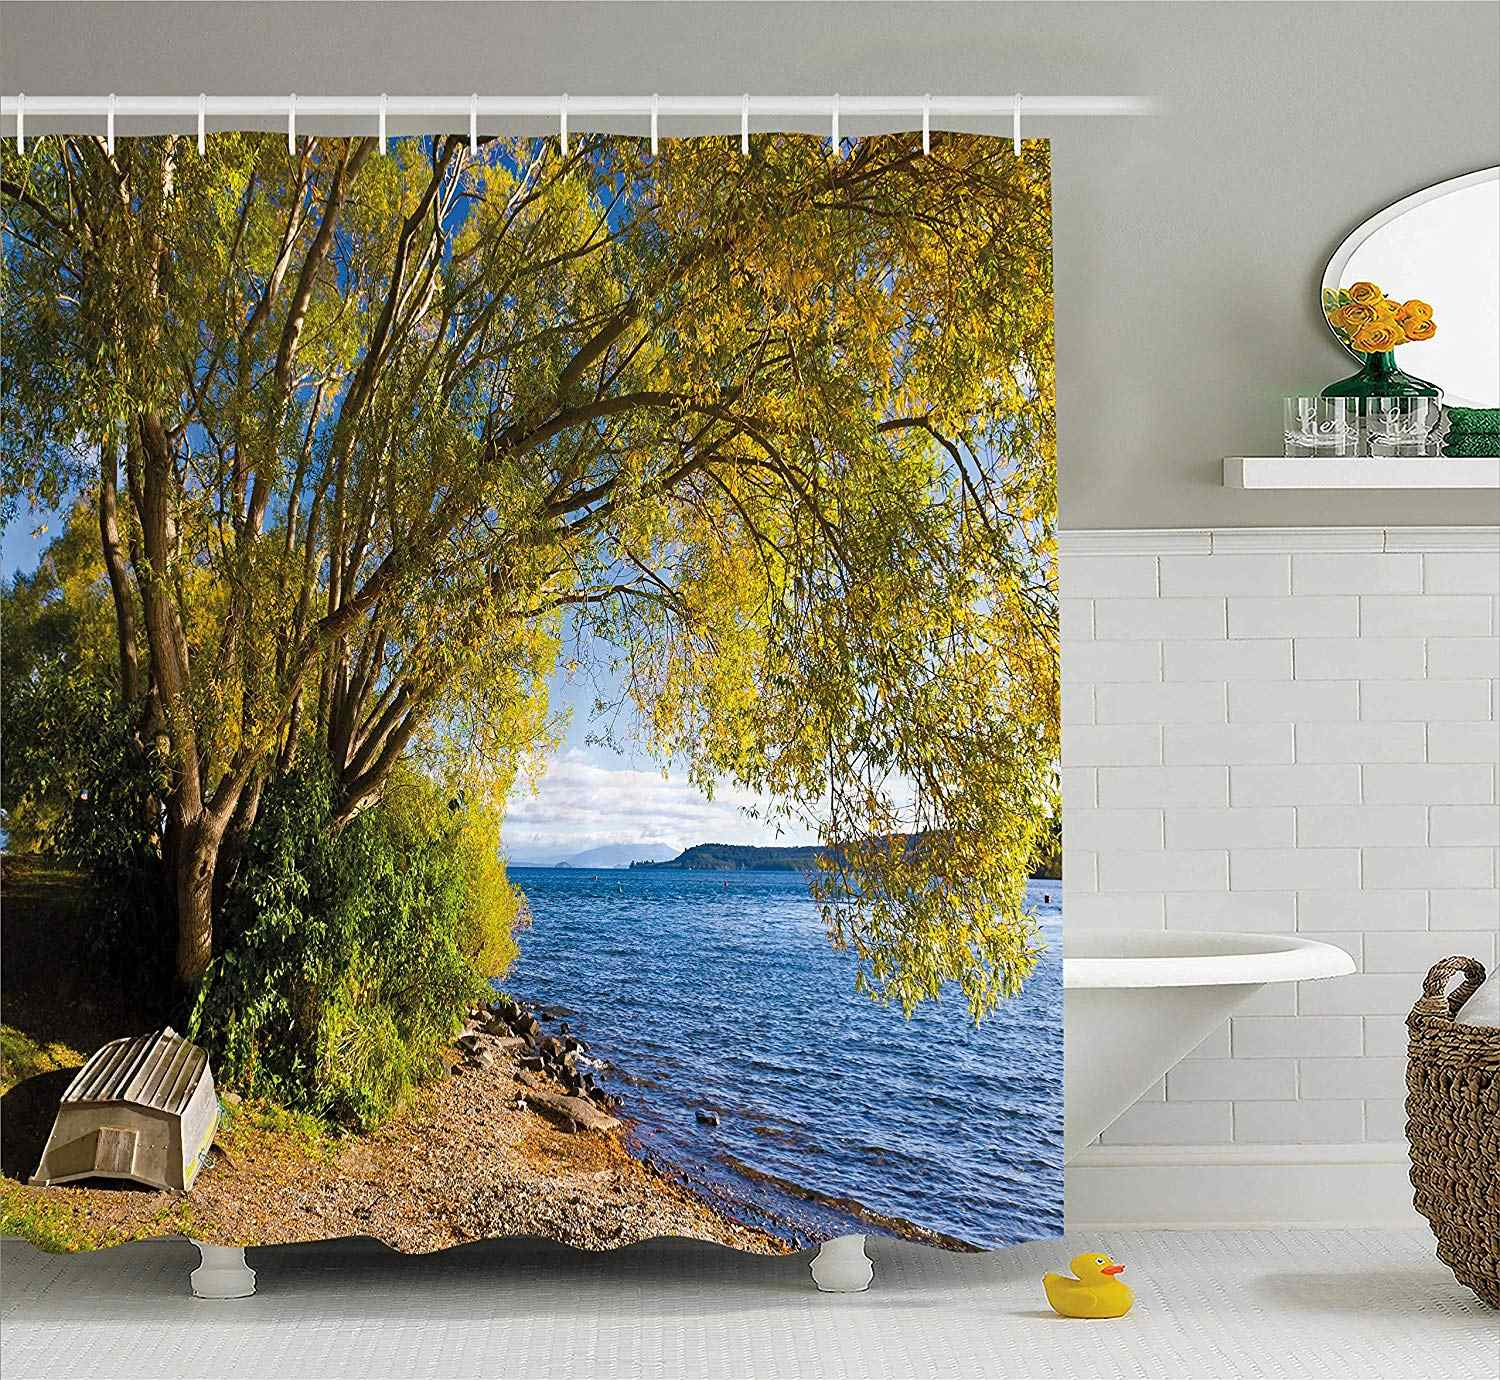 Nature Shower Curtain Small Boat Under Tree By The Lake North Island New Zealand Picturesque View Fabric Bathroom Decor Shower Curtains Aliexpress